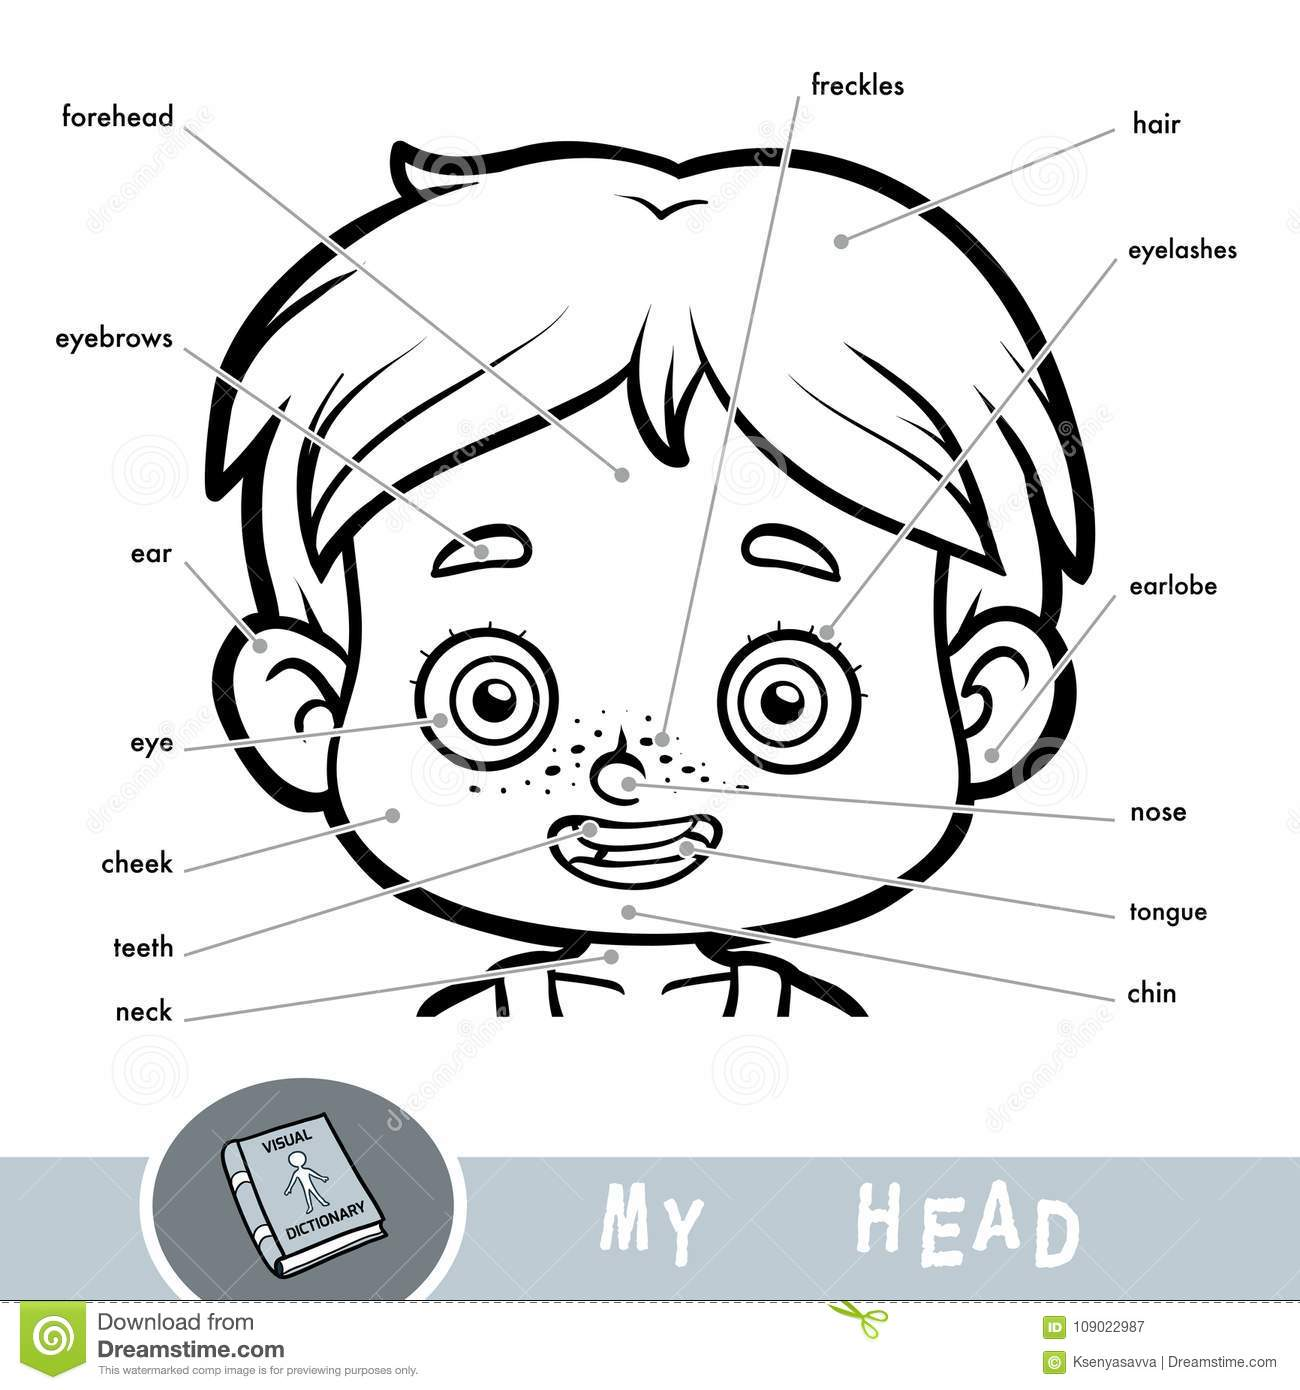 Visual Dictionary About The Human Body  My Head Parts For A